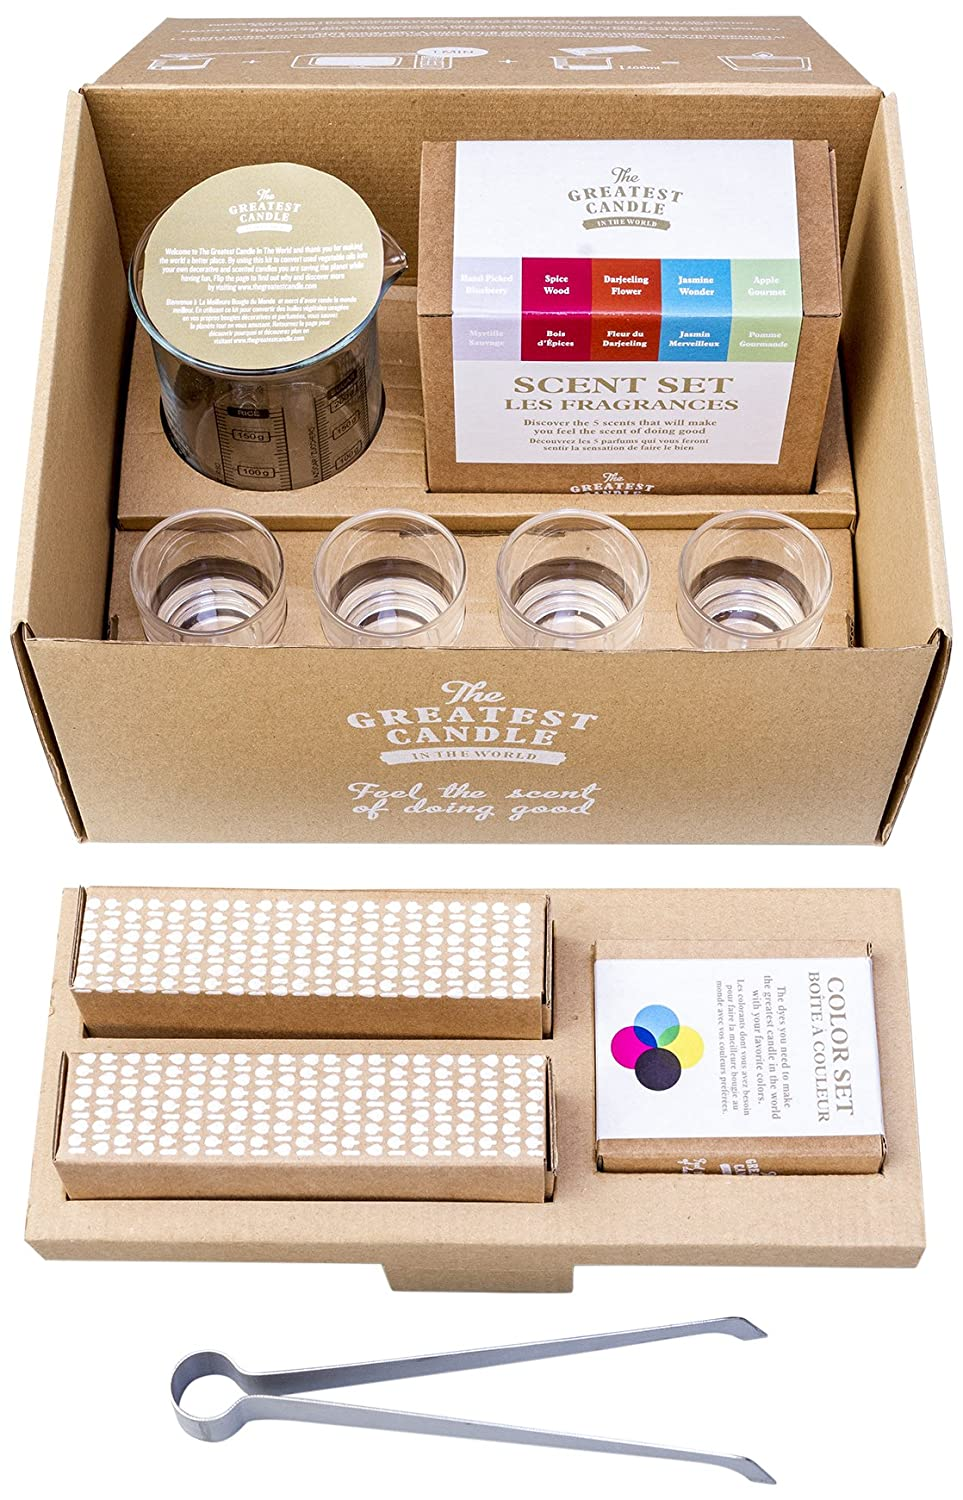 The Greatest Candle In The World DIY Welcome Kit de Bougies, Cire végétale, Blanc, 24x 20x 15cm O2W S.A. P0100035